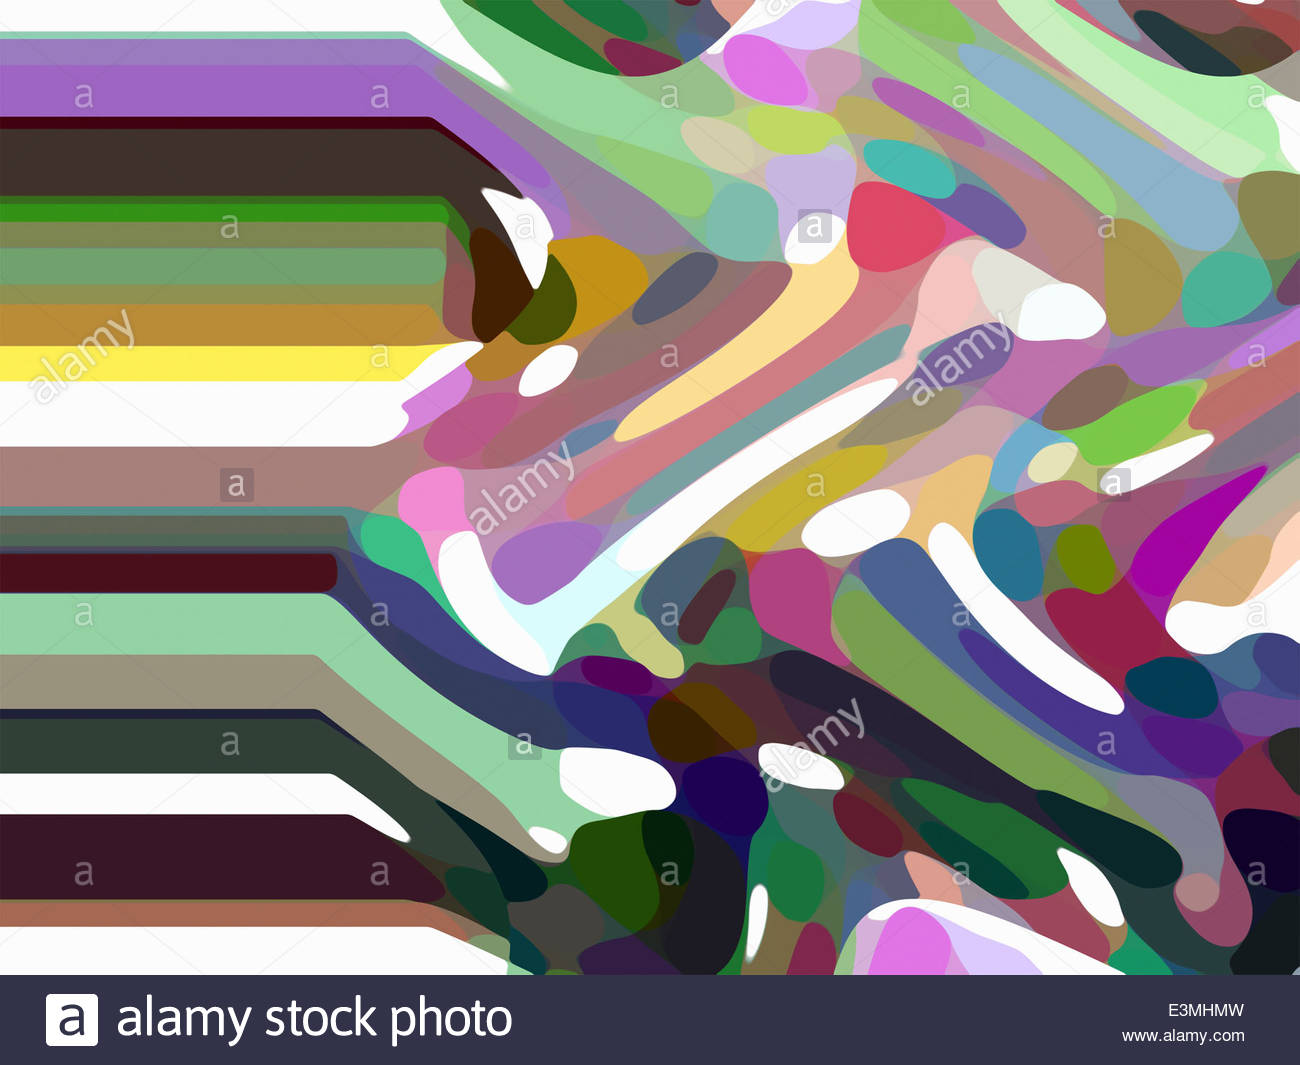 Multicolored abstract backgrounds pattern of order and chaos - Stock Image